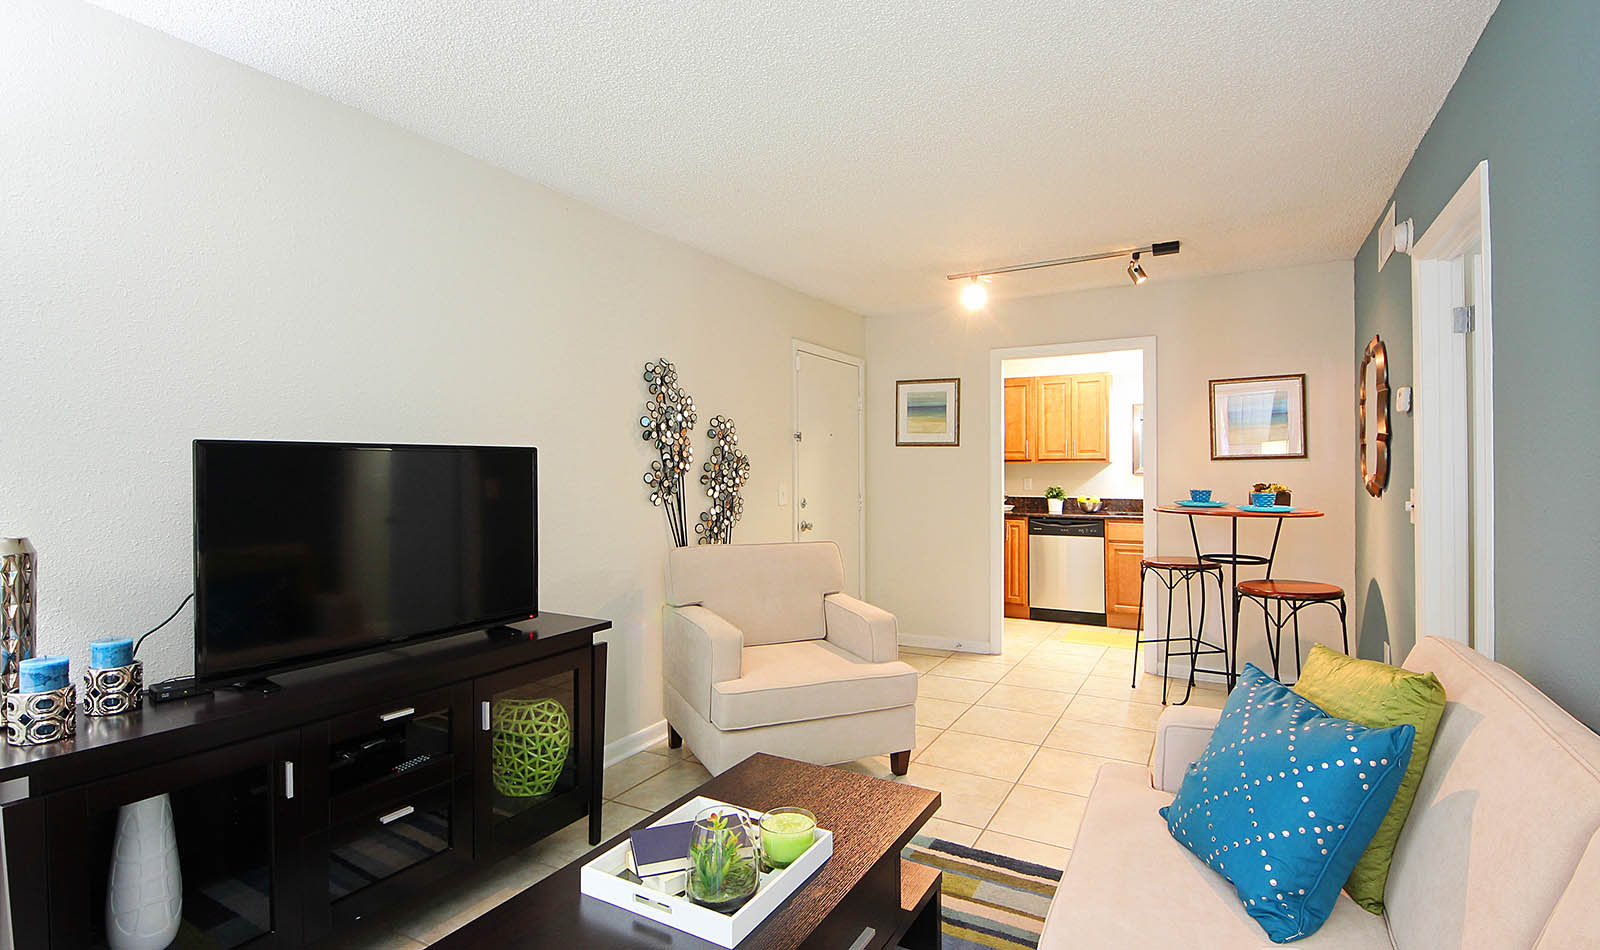 Living Room With Flat Screen Tv at Altamonte at Spring Valley in Altamonte Springs, FL